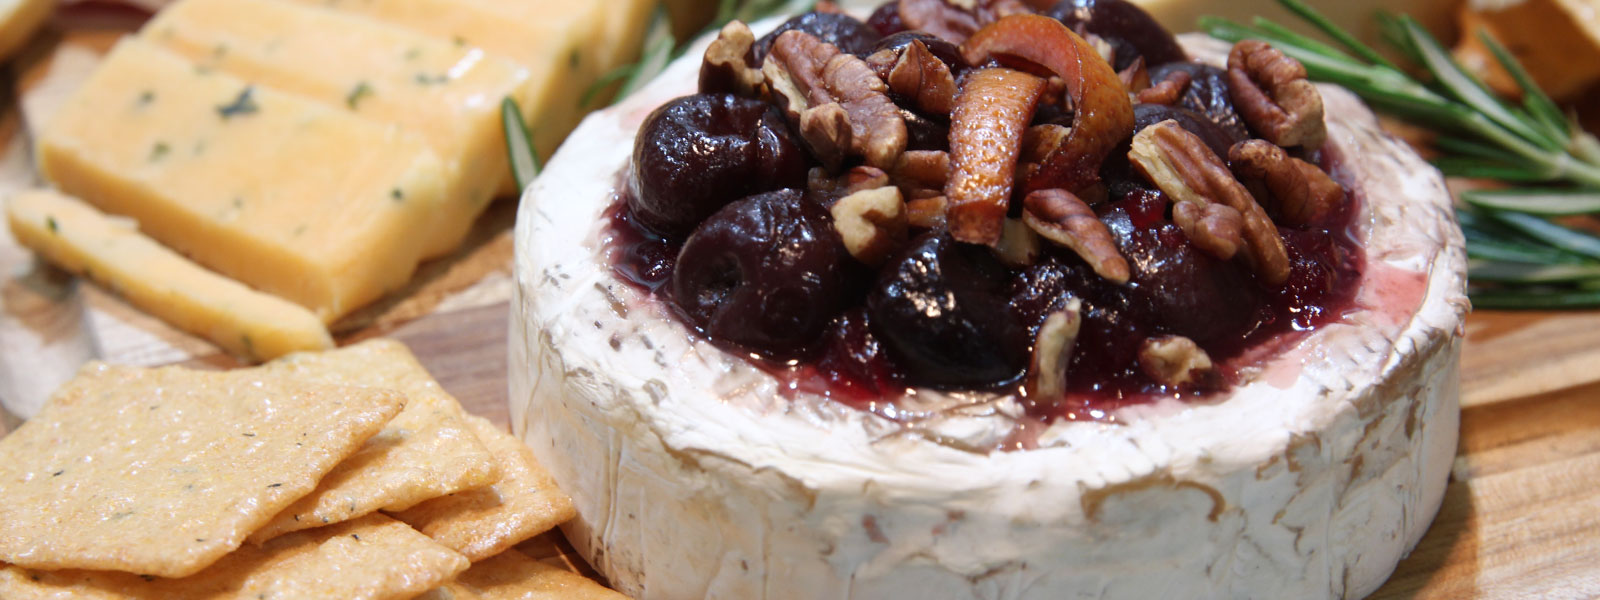 Bourbon Cherries on Cheese Board